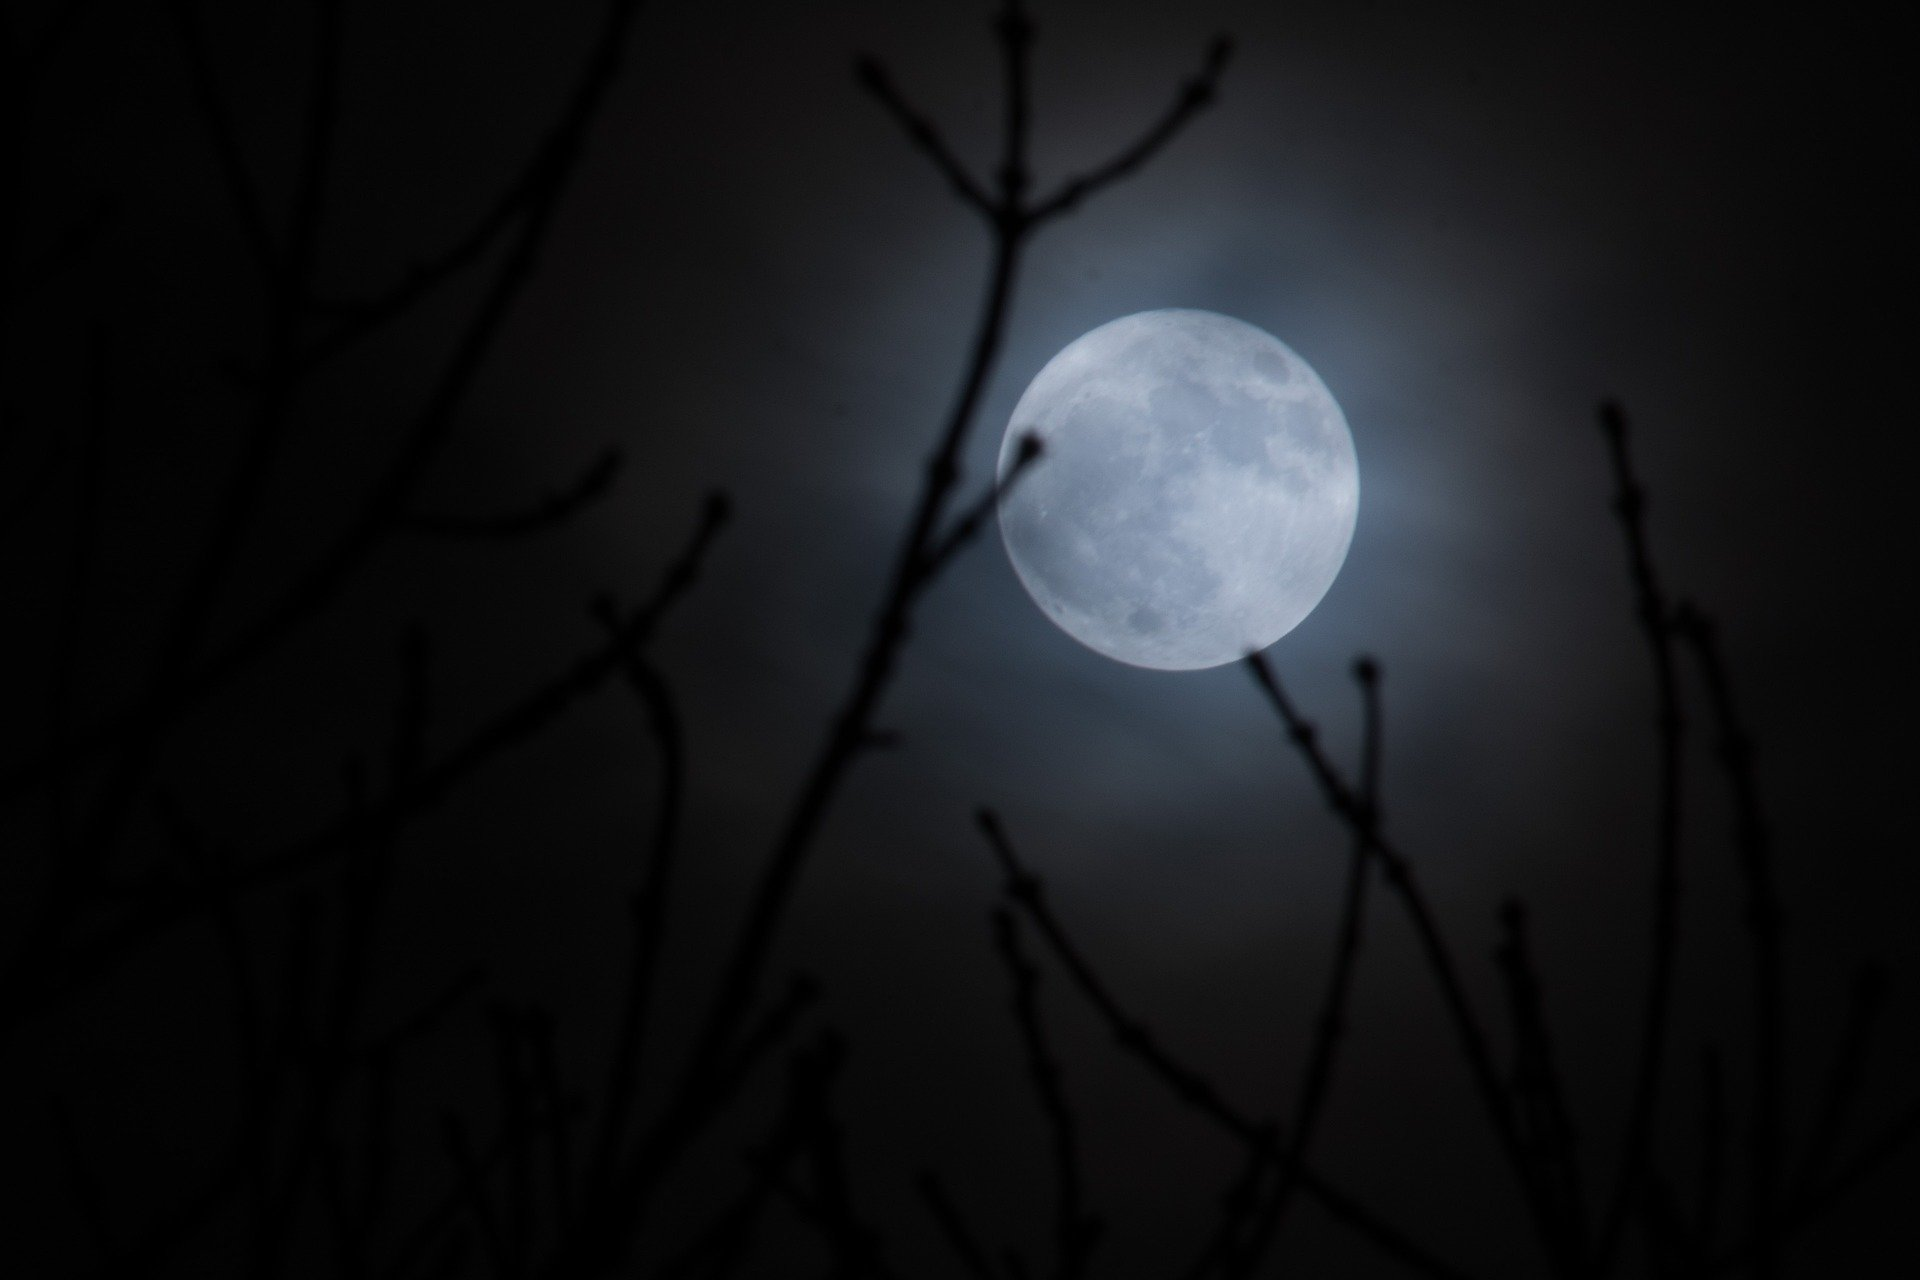 Full moon linked to increased risk of fatal motorcycle crashes